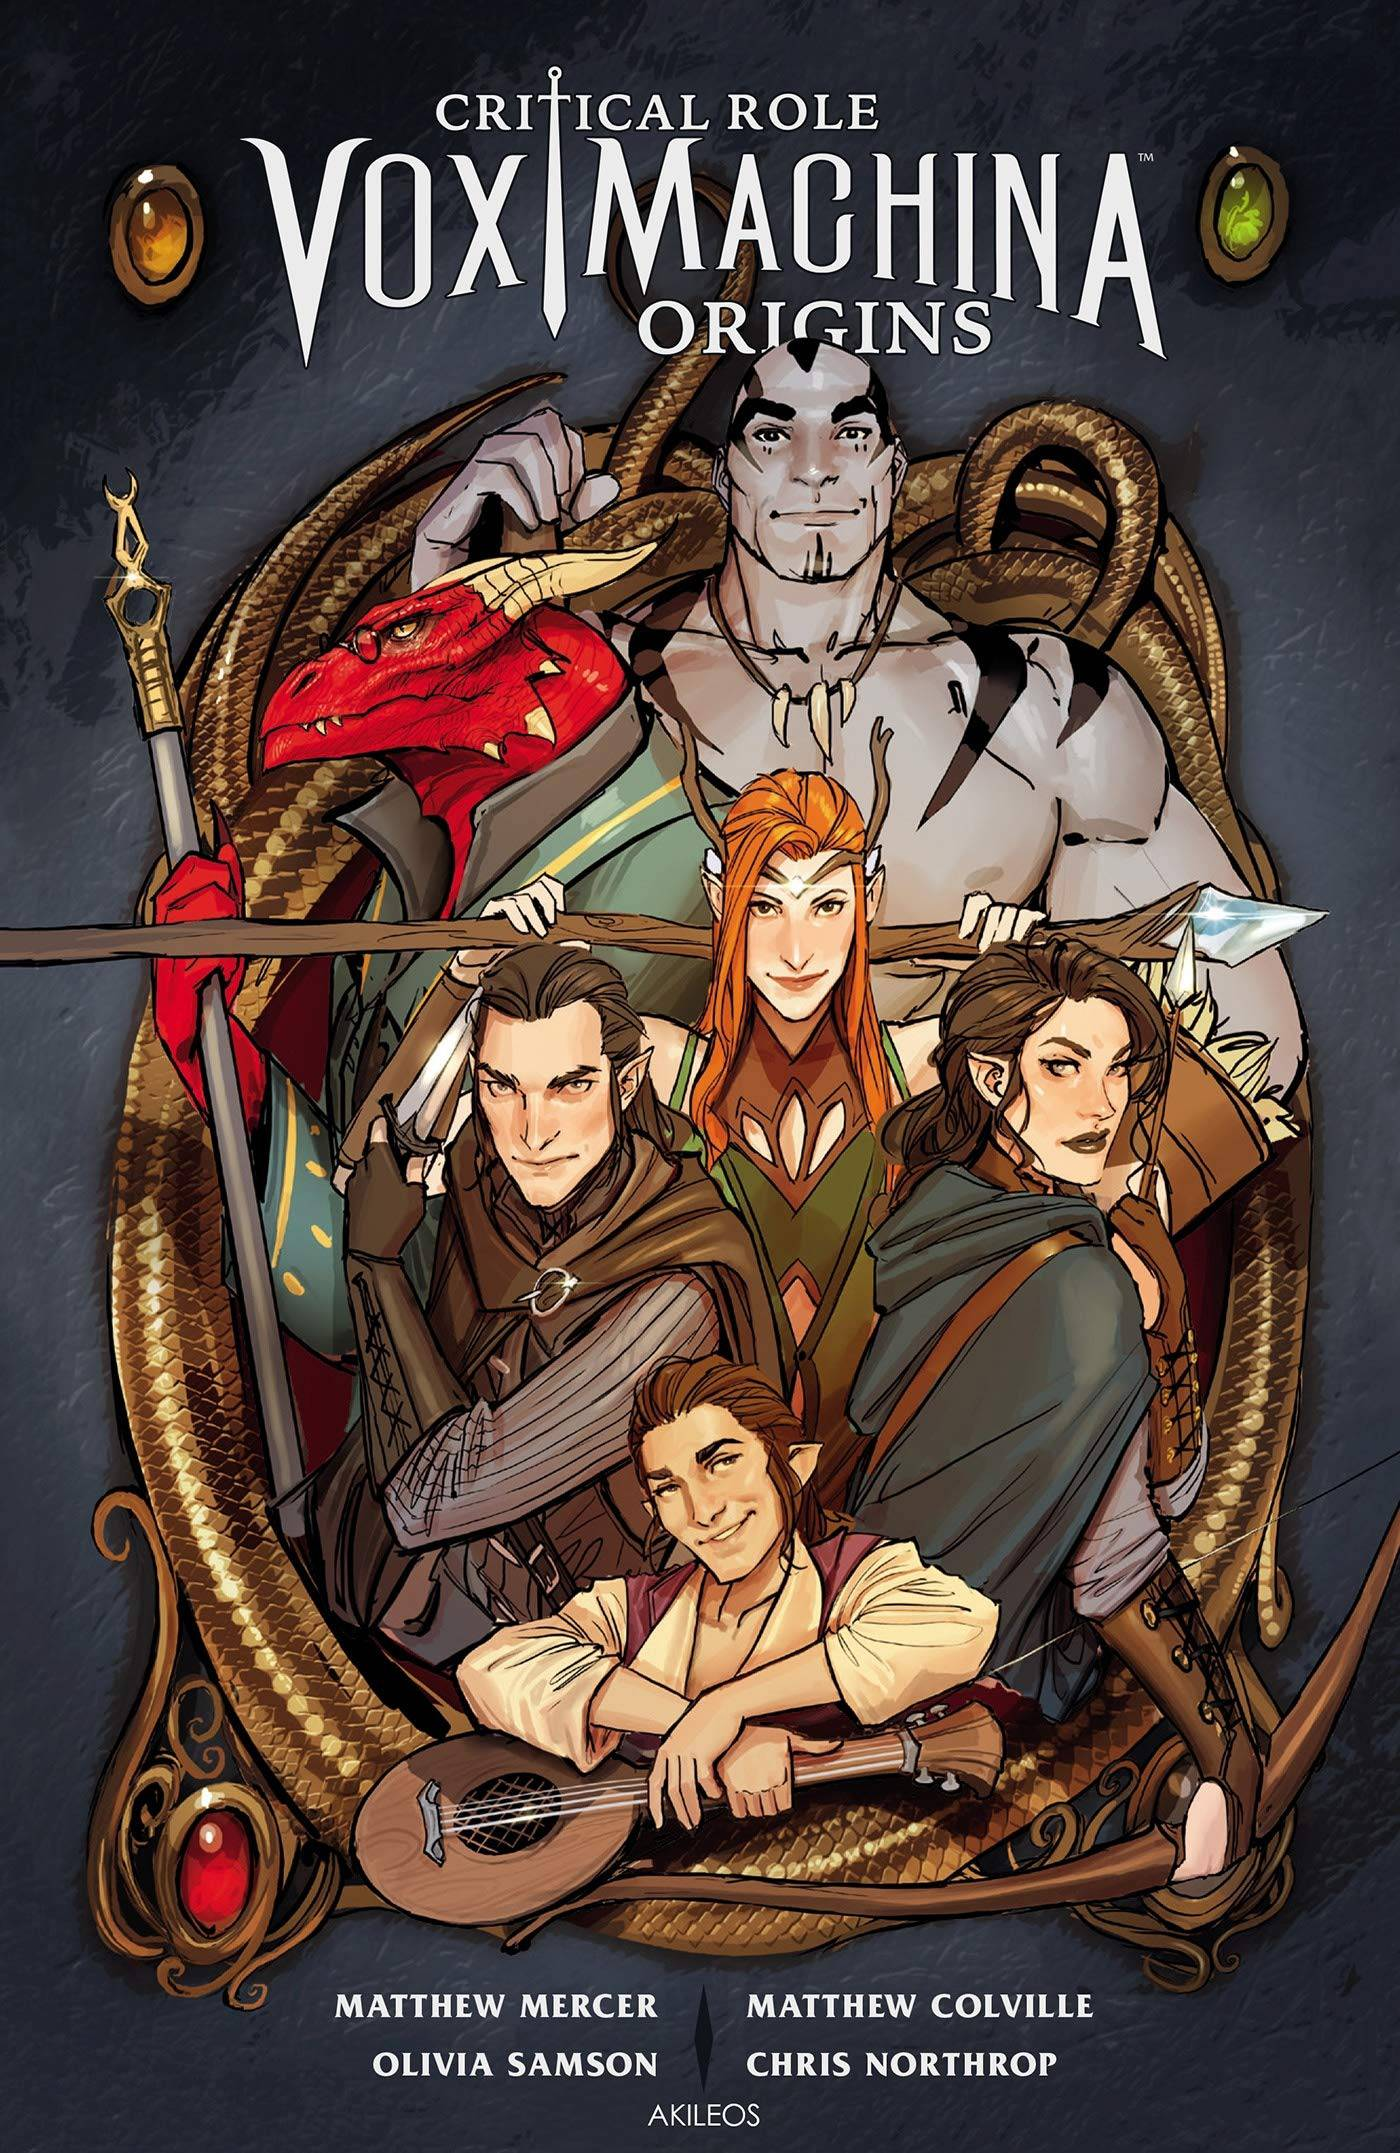 Critical Role Vox Machina tome 1: Origines